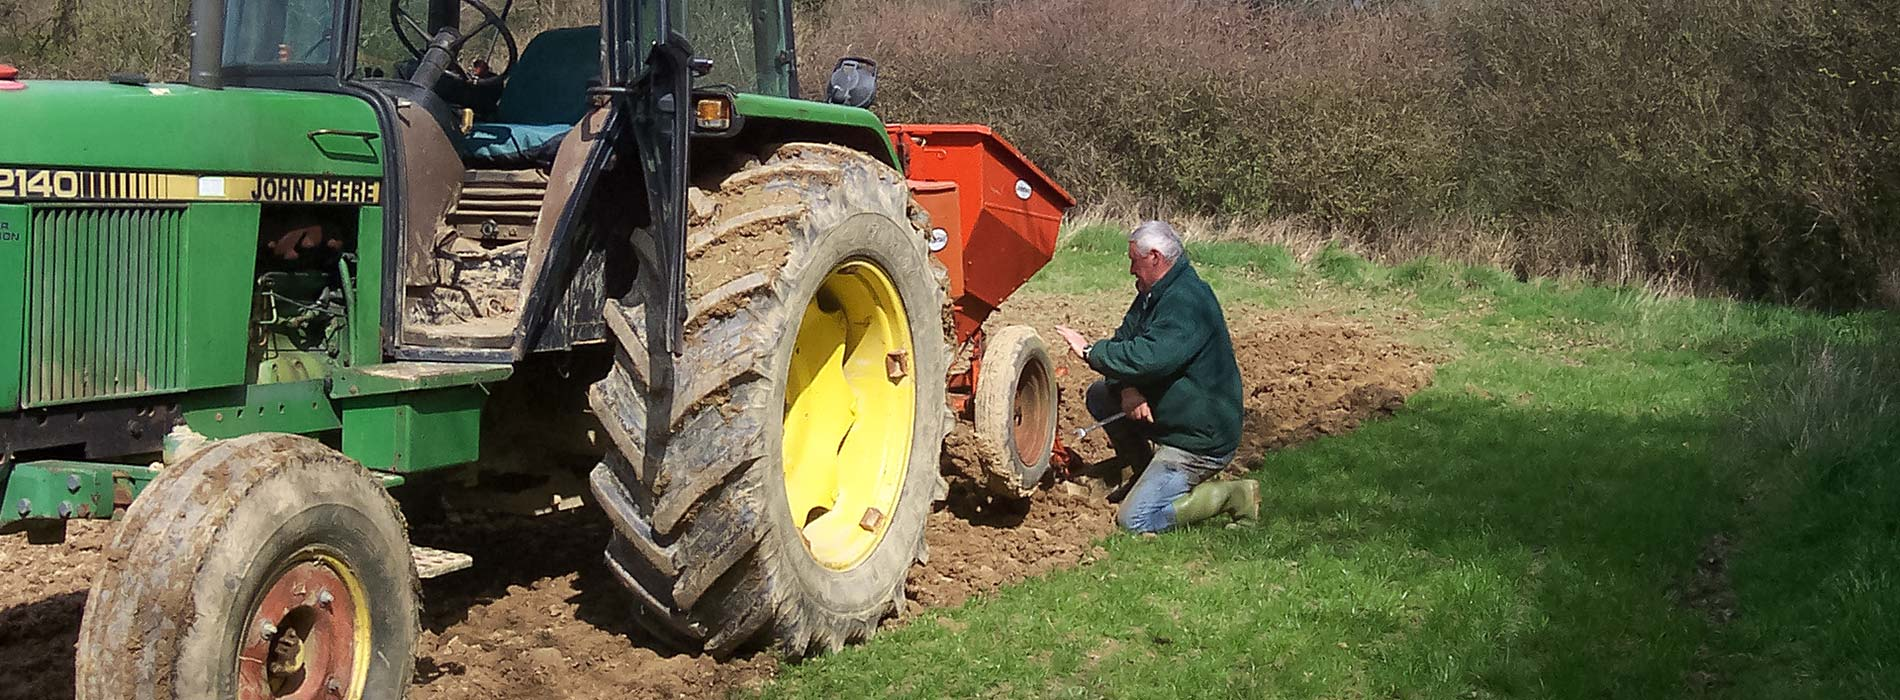 Potatoe planting at Rectory Barn Farm